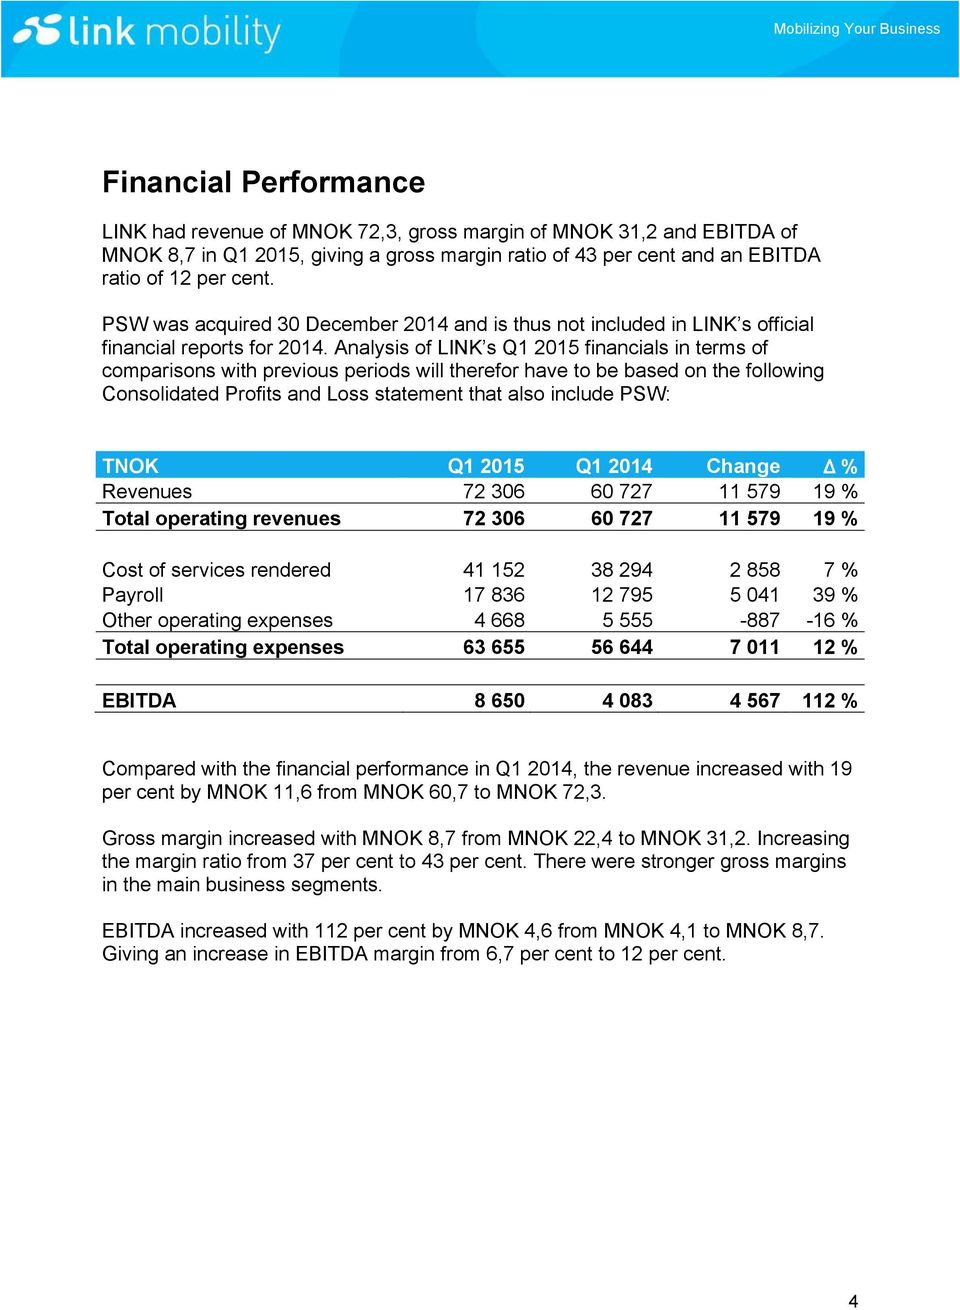 Analysis of LINK s Q1 2015 financials in terms of comparisons with previous periods will therefor have to be based on the following Consolidated Profits and Loss statement that also include PSW: TNOK